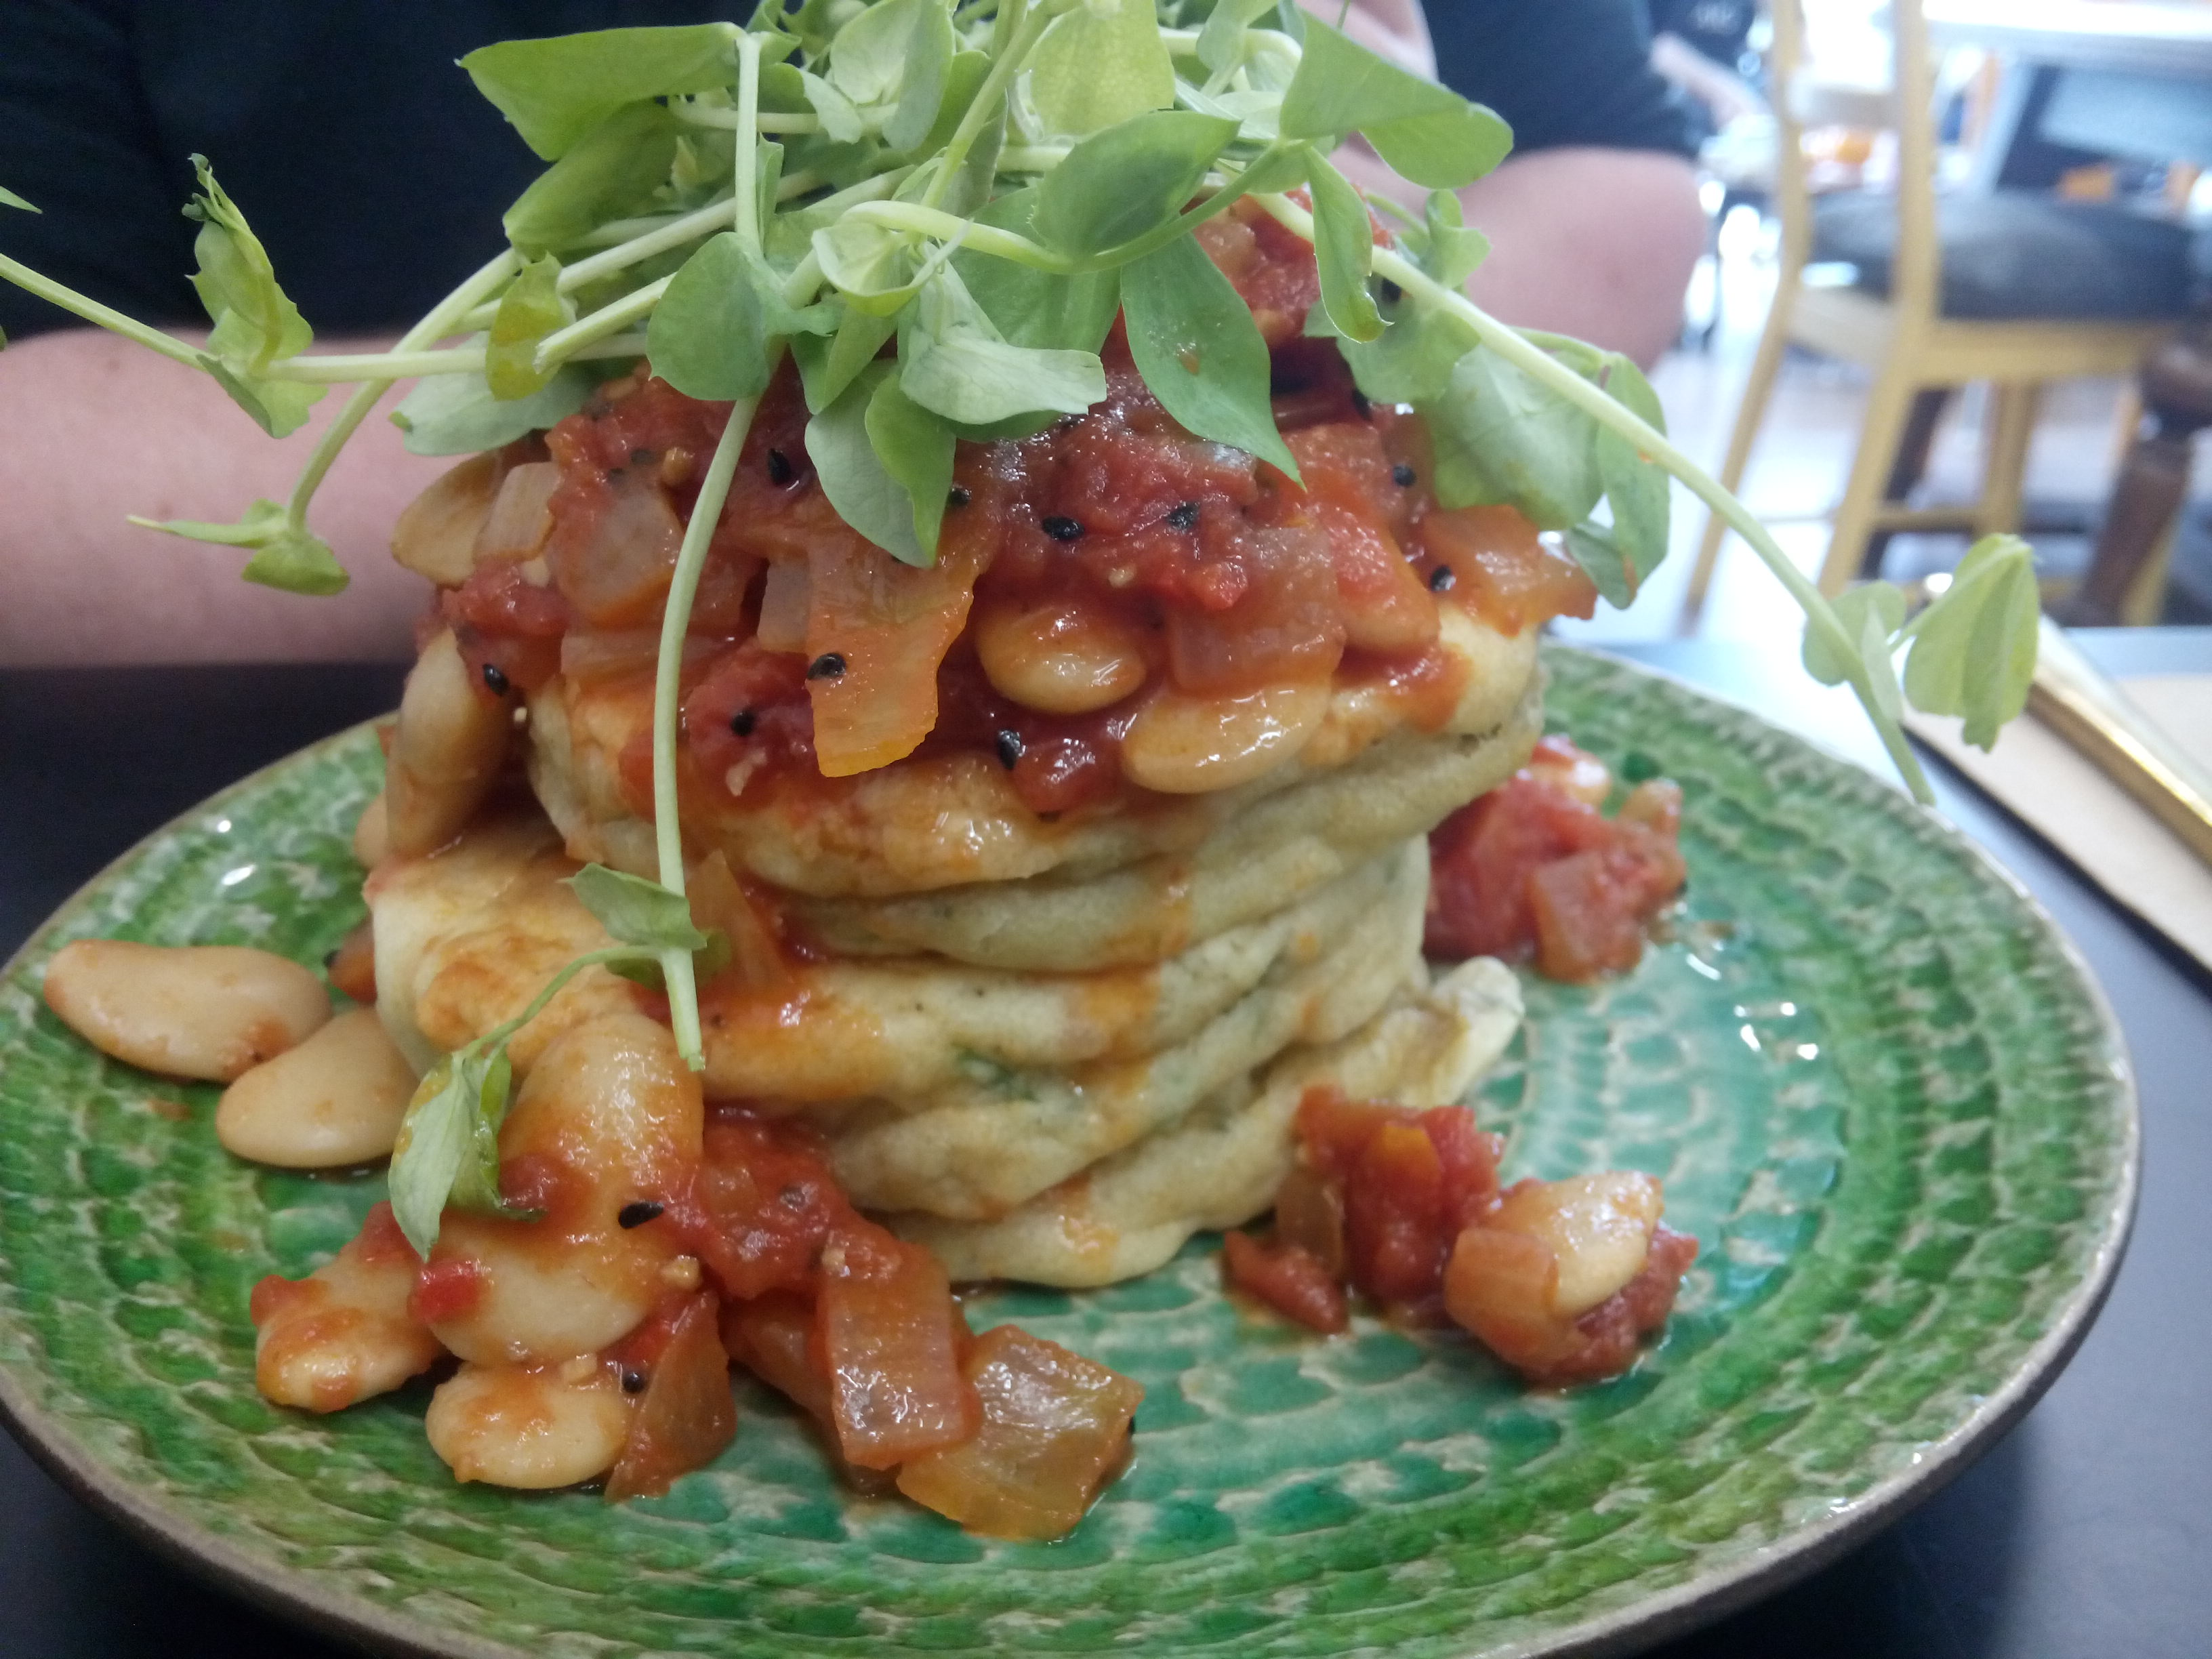 A fat pancake stack with beans in red sauce